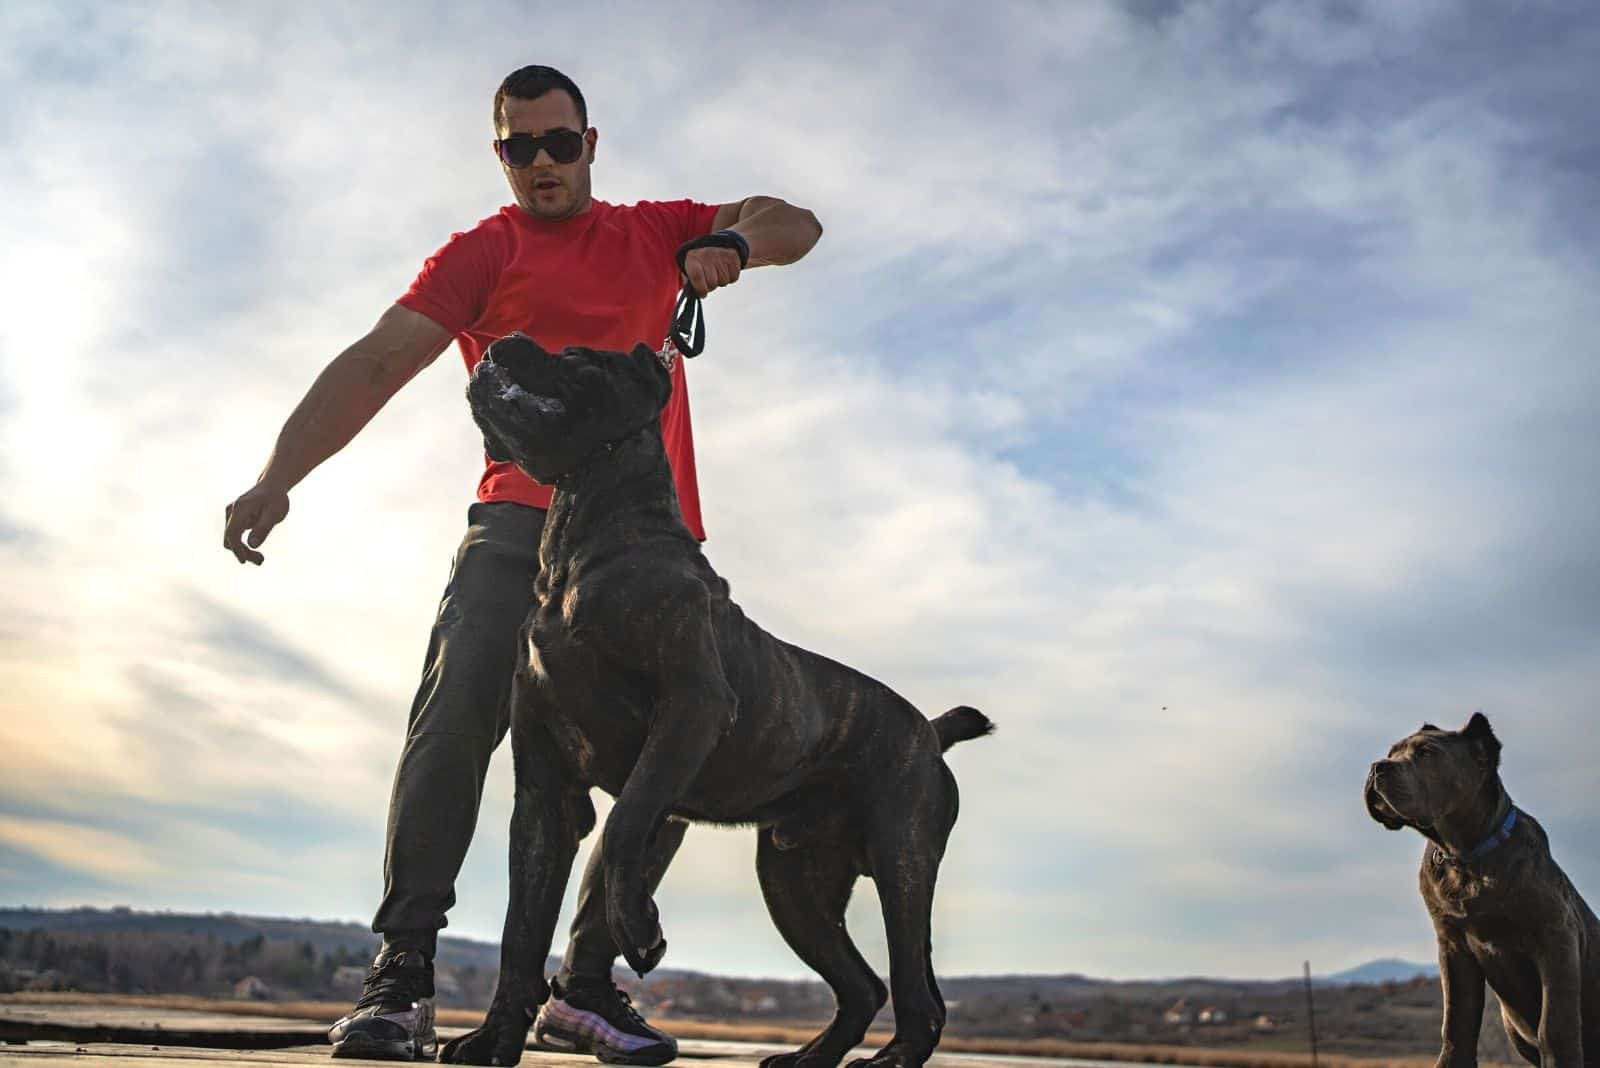 chained cane corso dog being held by owner for being aggressive